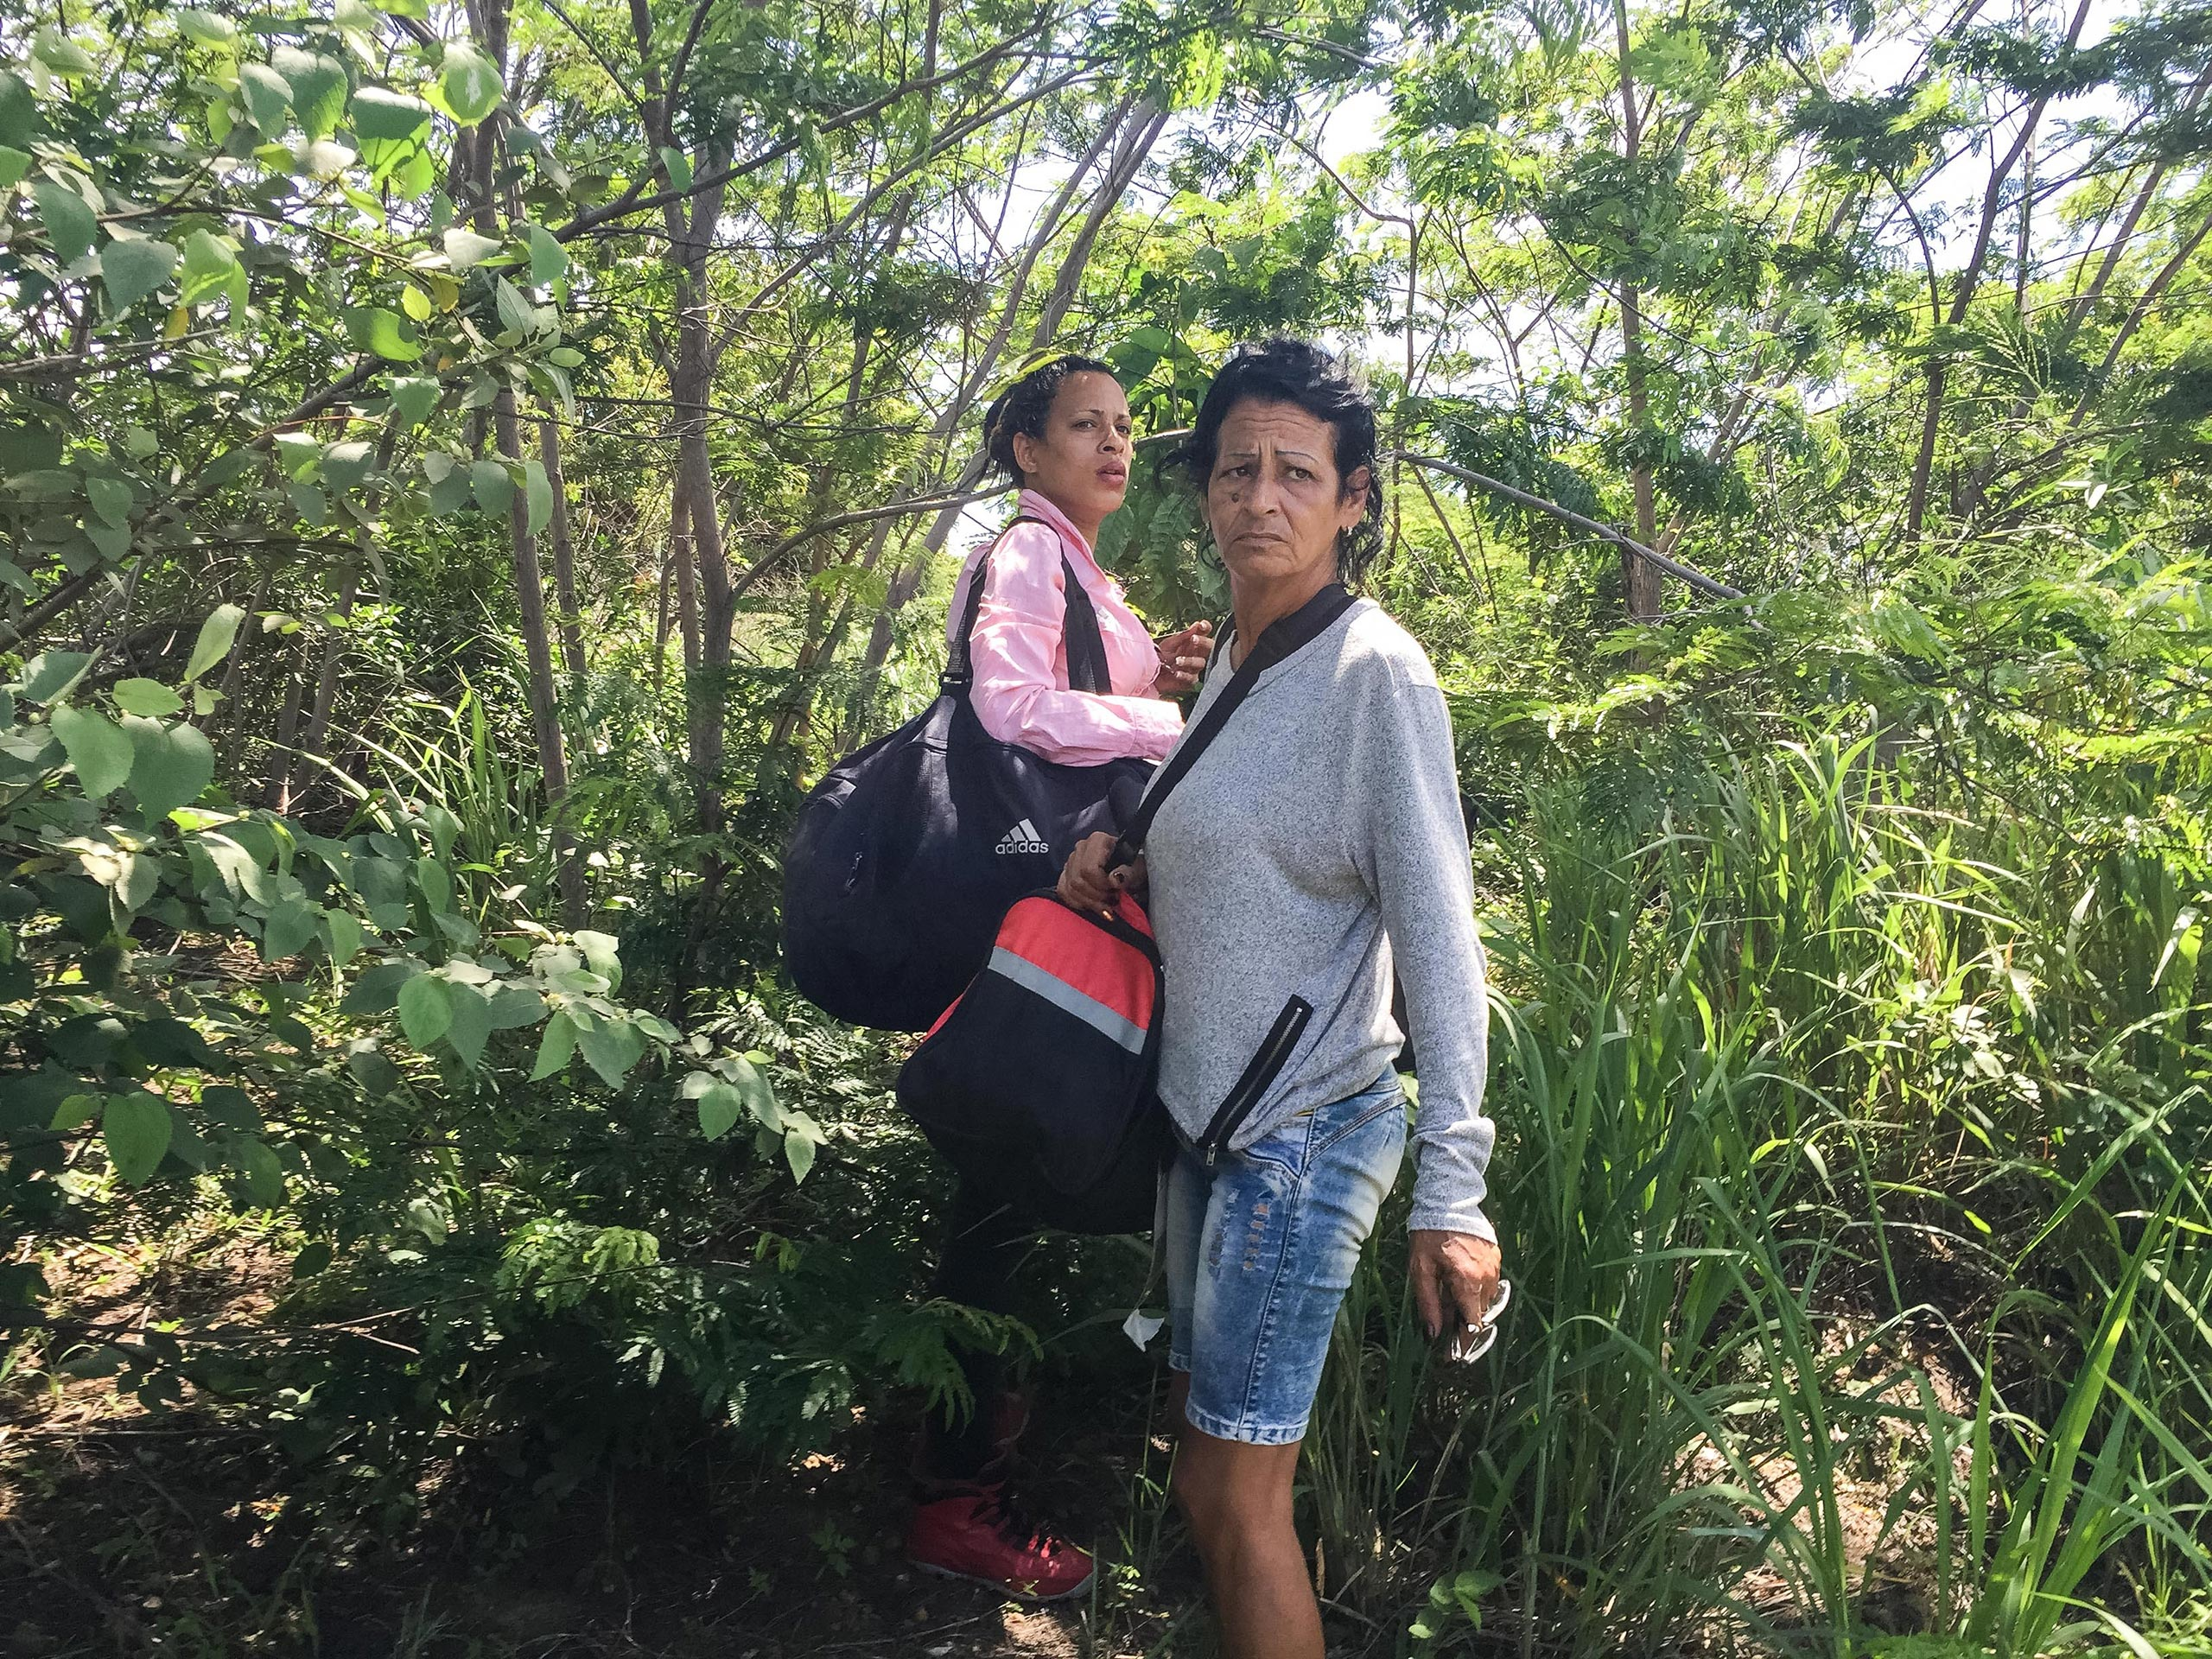 Marta, right, and Liset nervously watch for the signal to run to awaiting cars after crossing the border from Guyana into Brazil on May 14, 2016.From  The Long Way to America